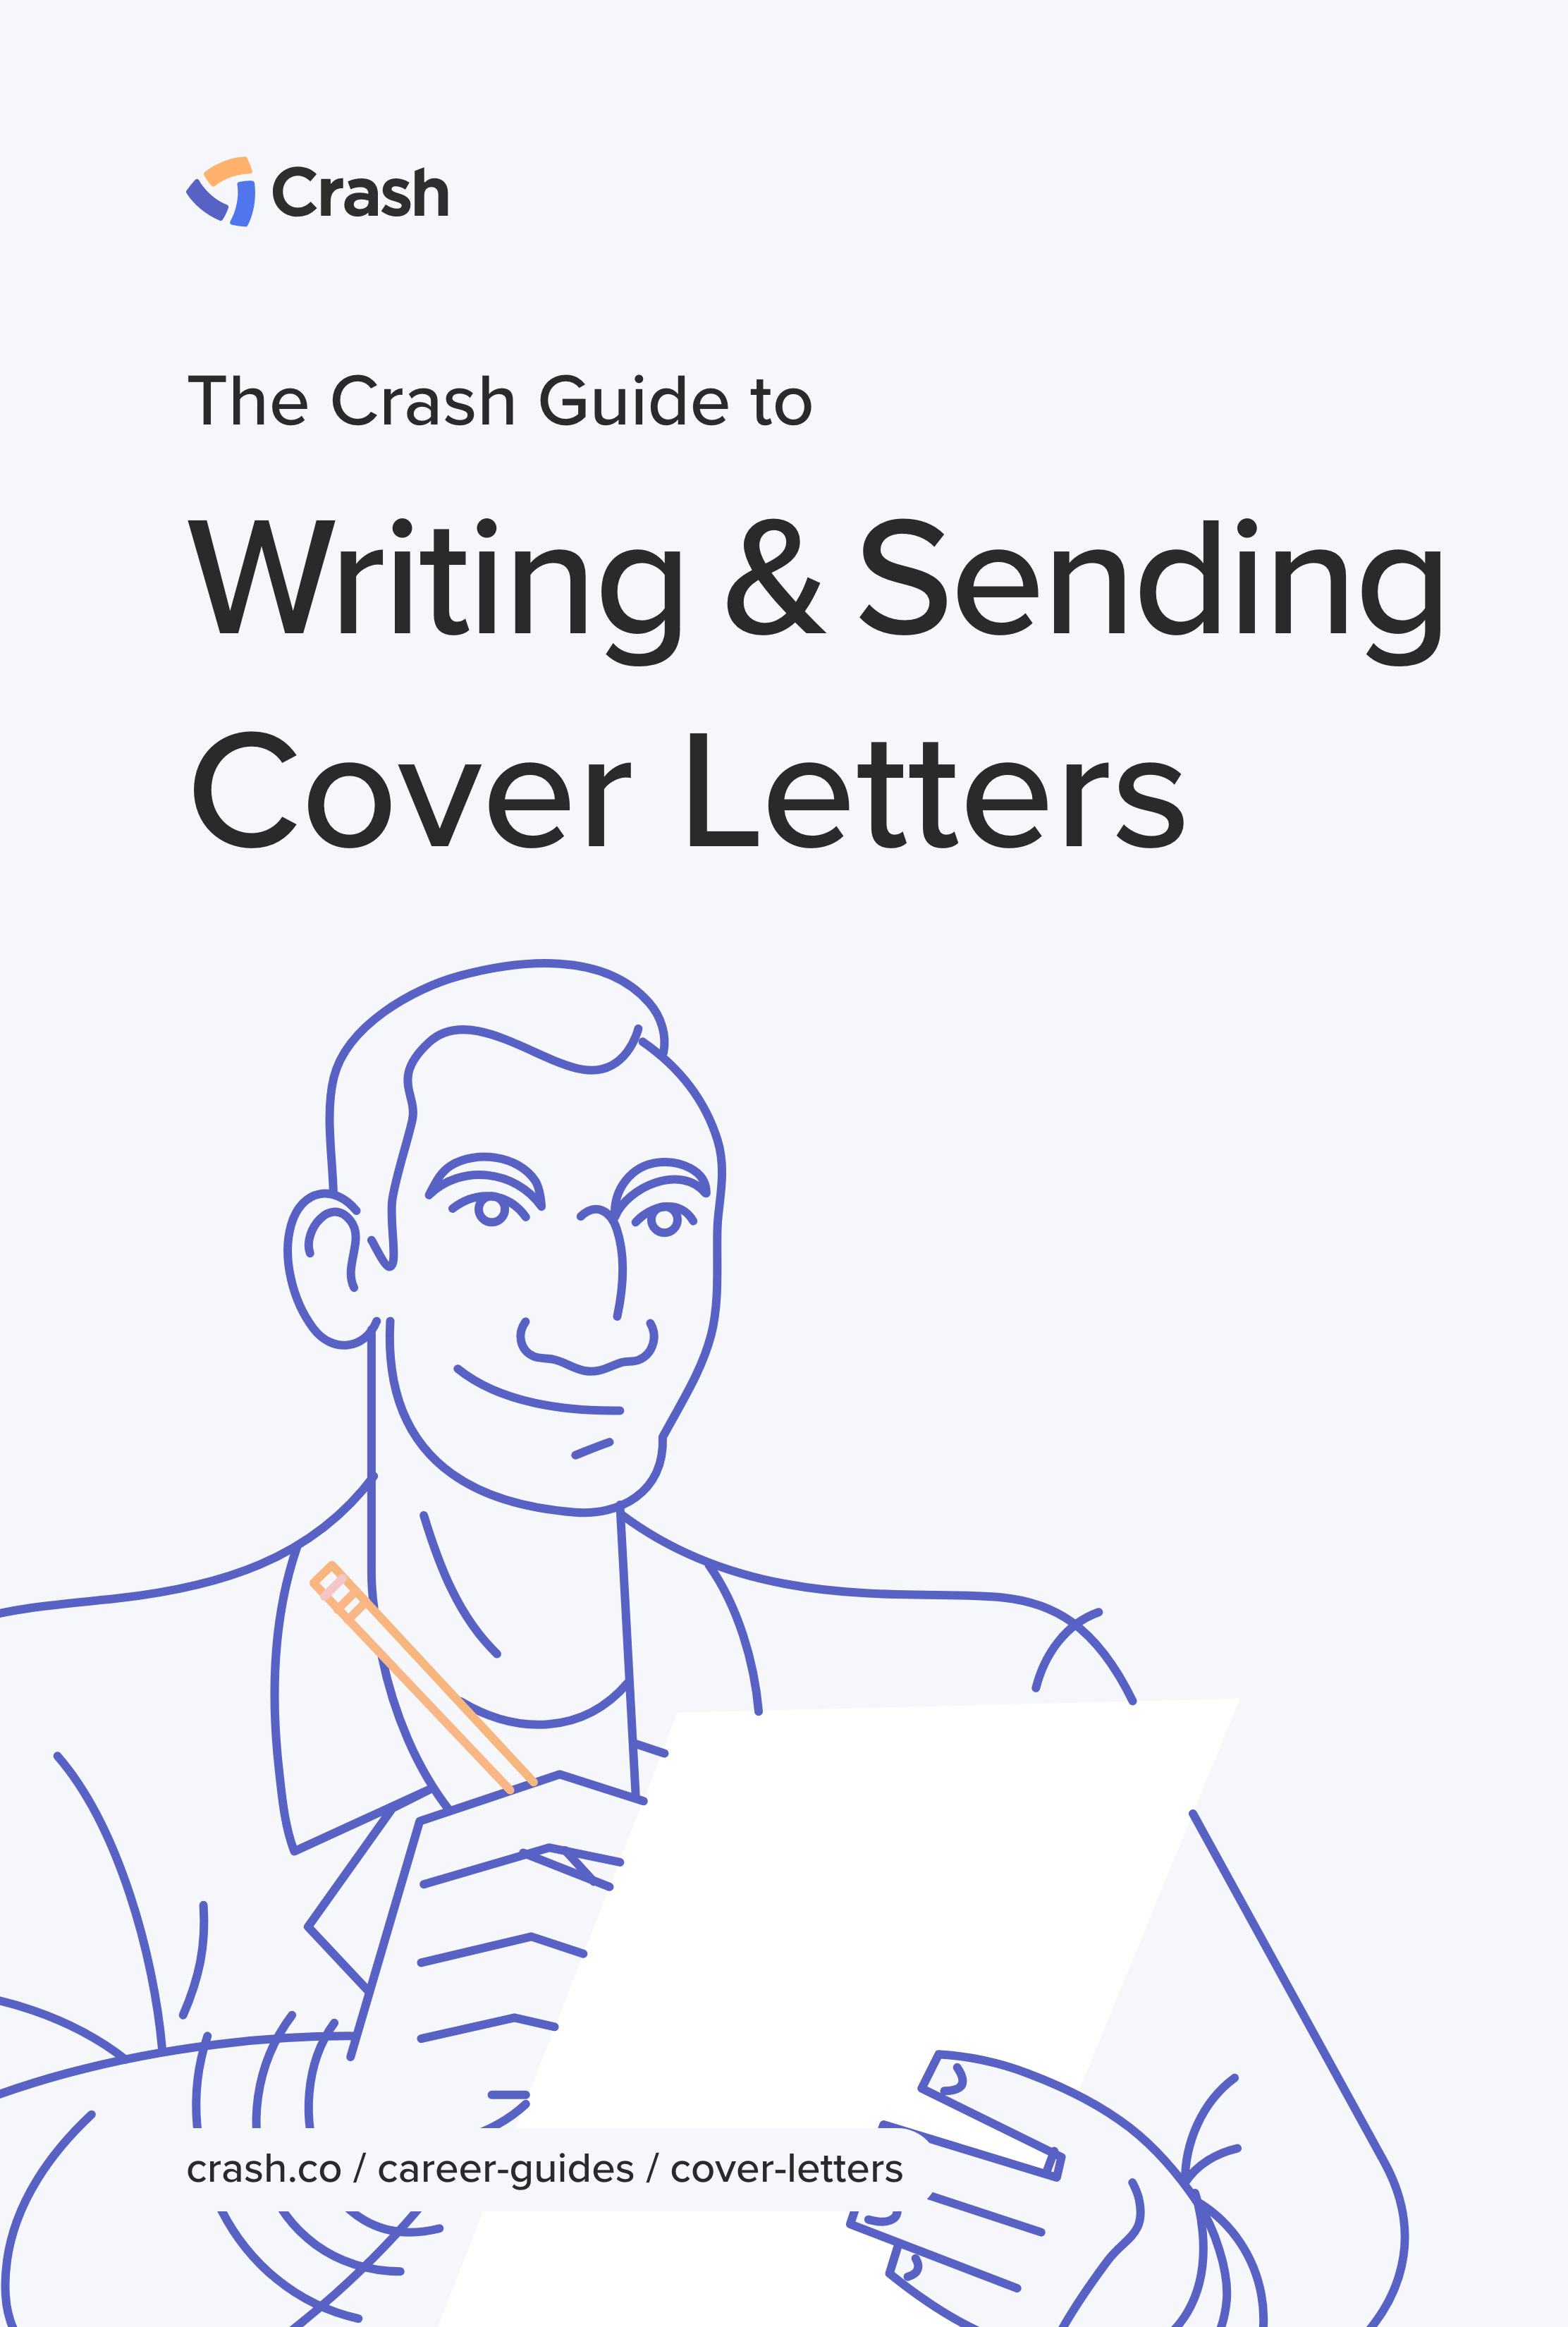 cover letters crash career guide cover image